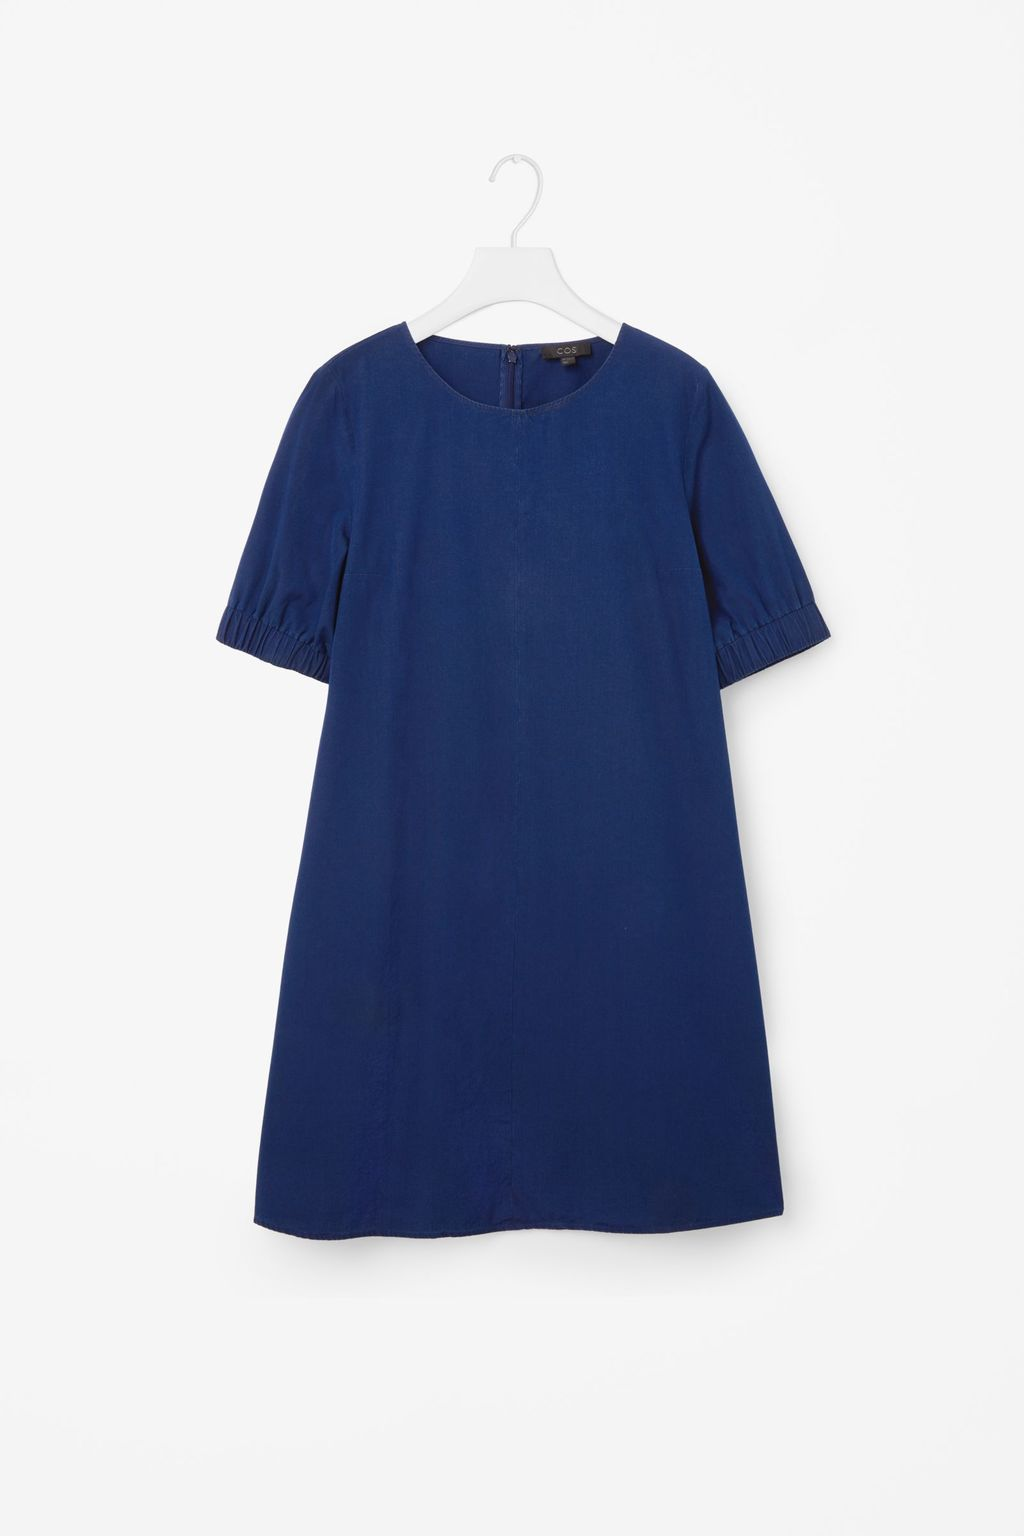 Denim Dress With Elastic Sleeves - style: shift; pattern: plain; predominant colour: denim; occasions: casual; length: just above the knee; fit: soft a-line; fibres: cotton - 100%; neckline: crew; sleeve length: short sleeve; sleeve style: standard; texture group: denim; pattern type: fabric; season: s/s 2016